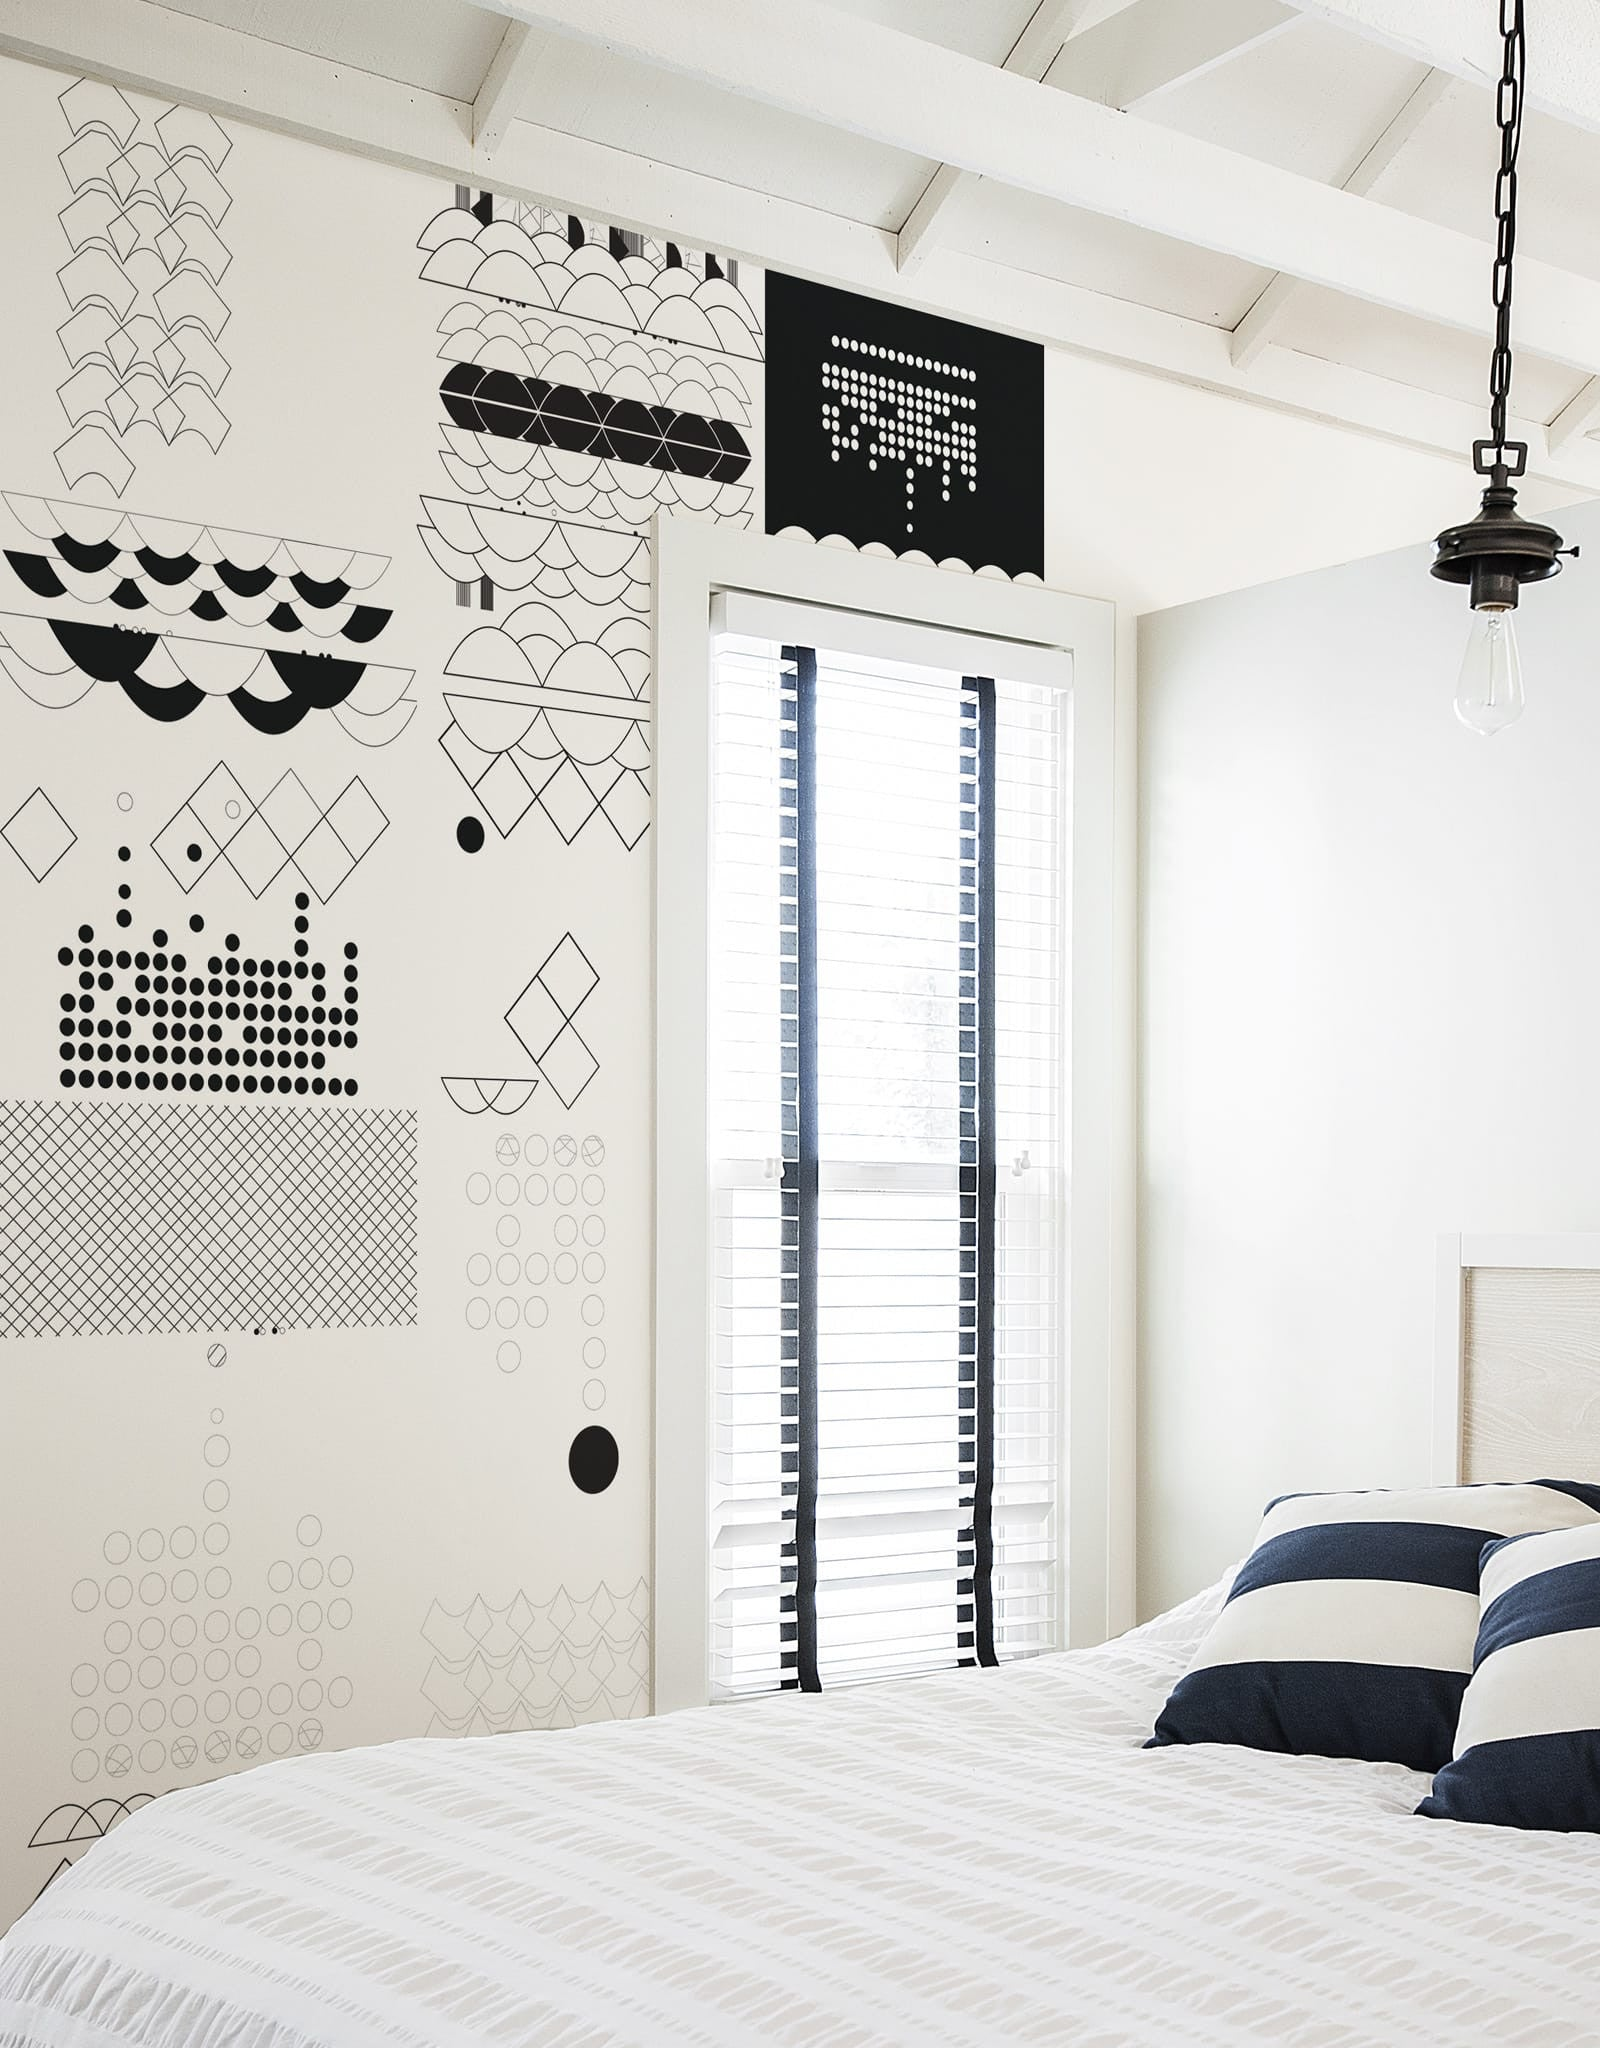 self adhesive removable wall decals surface graphics and home monochrome wall panels